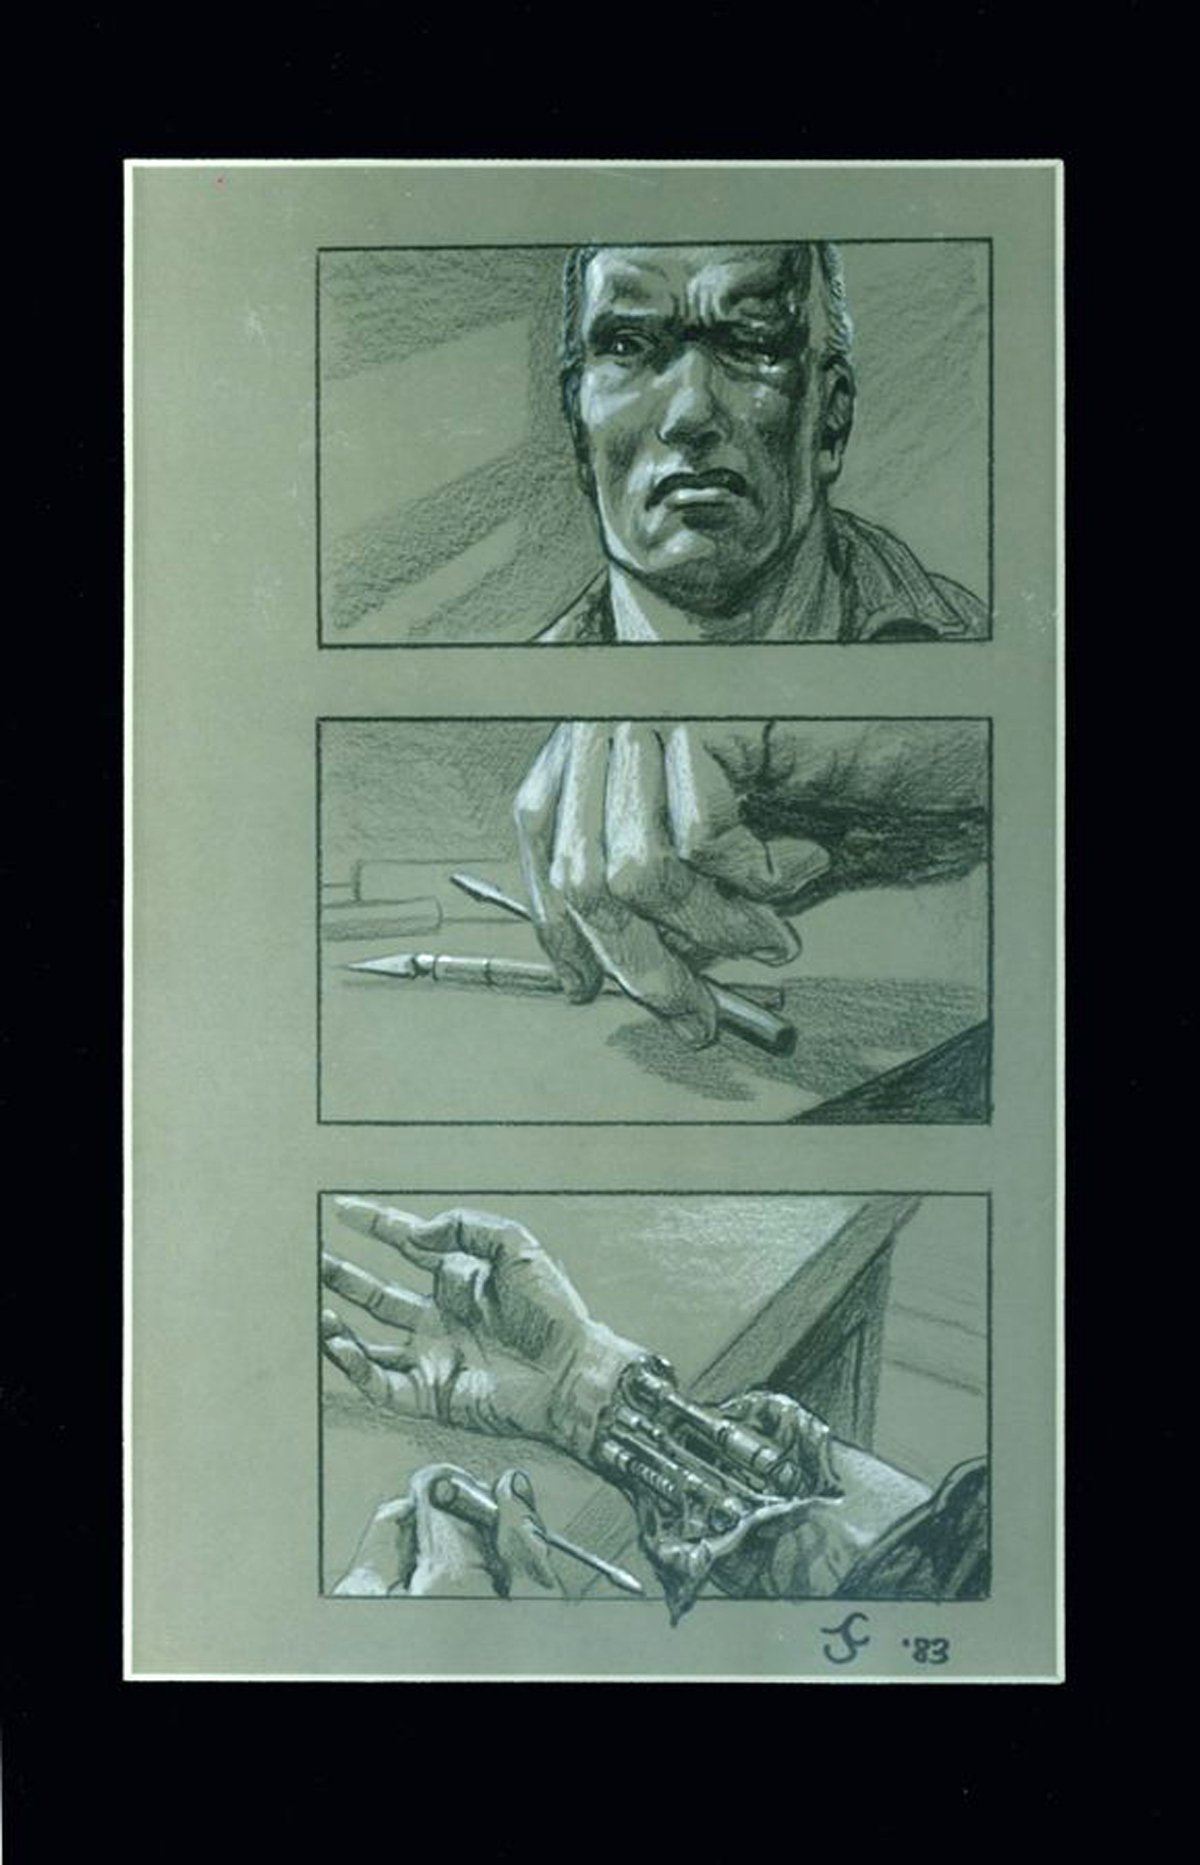 Terminator storyboards drawn by James Cameron, posted by Arnold Schwarzenegger Twitter